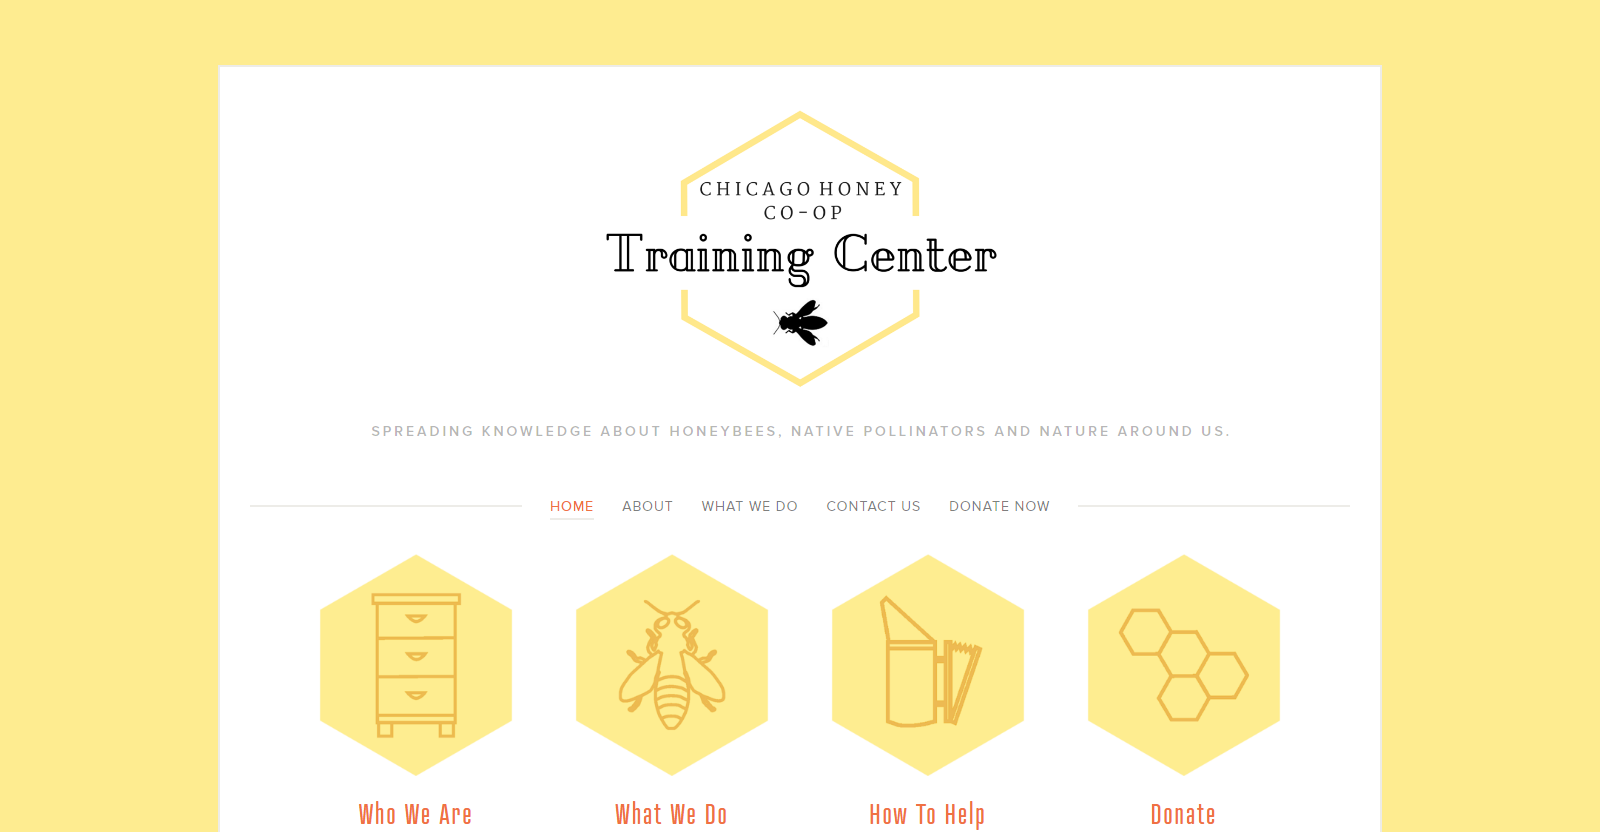 CHICAGO HONEY CO-OP TRAINING CENTER - This small non profit needed a website to introduce it's services to the public. As an offshoot of Chicago Honey Co-op (right) it needed to establish it's own identity and make clear what it has to offer. Services provided - logo design, beekeeping graphics, responsive website design, copywriting and images.